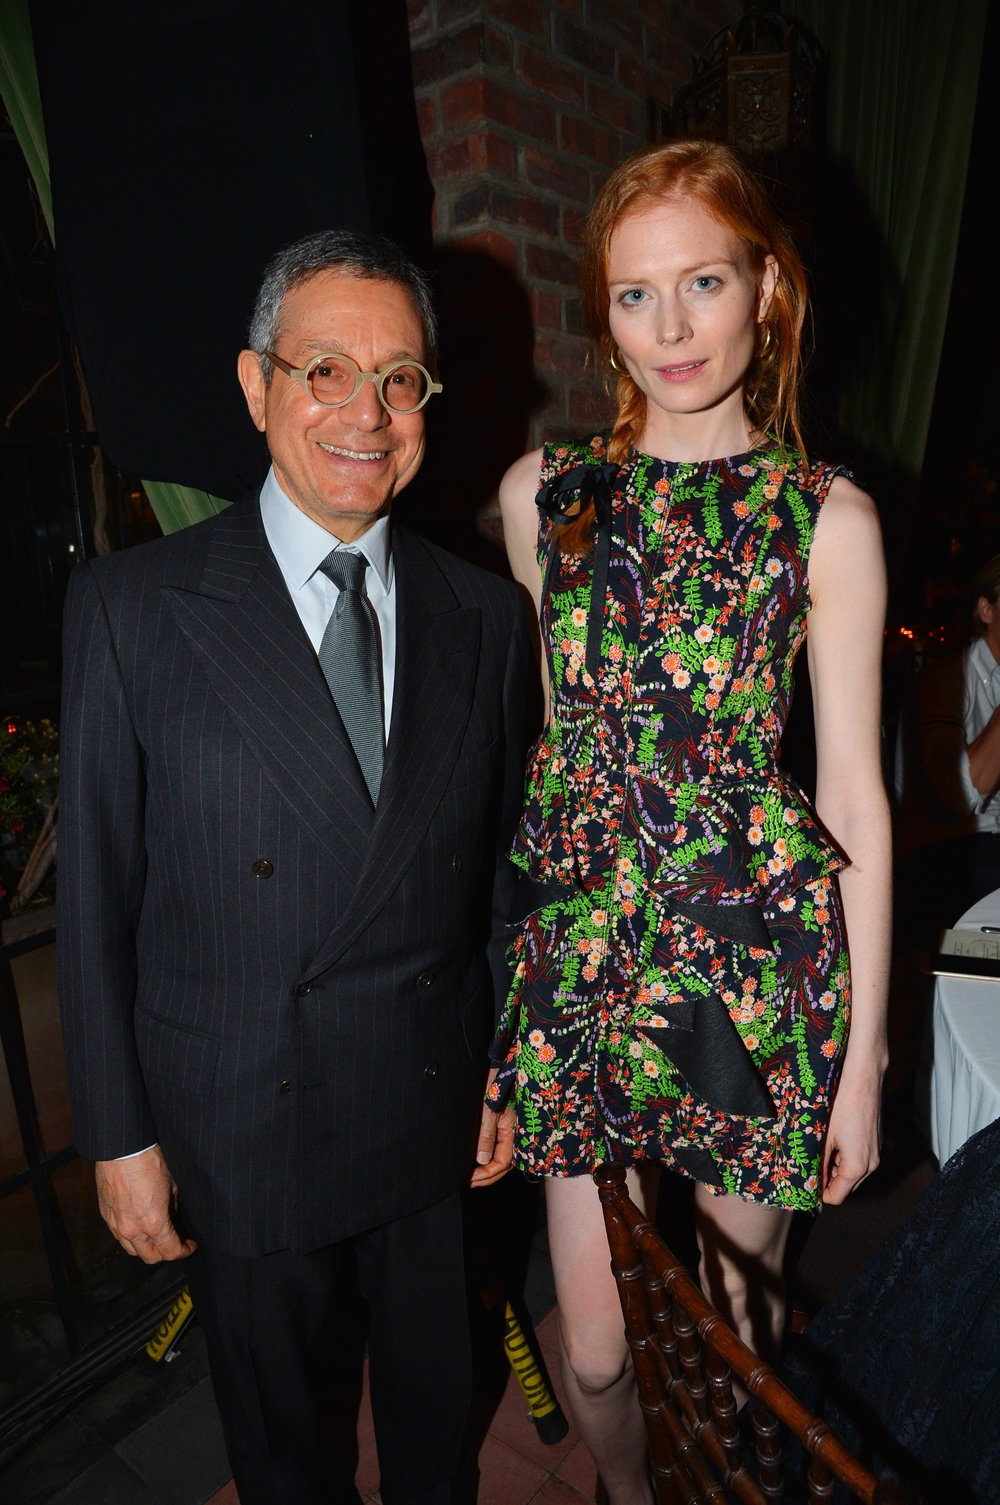 Jeffrey Deitch and Jessica Jaffe